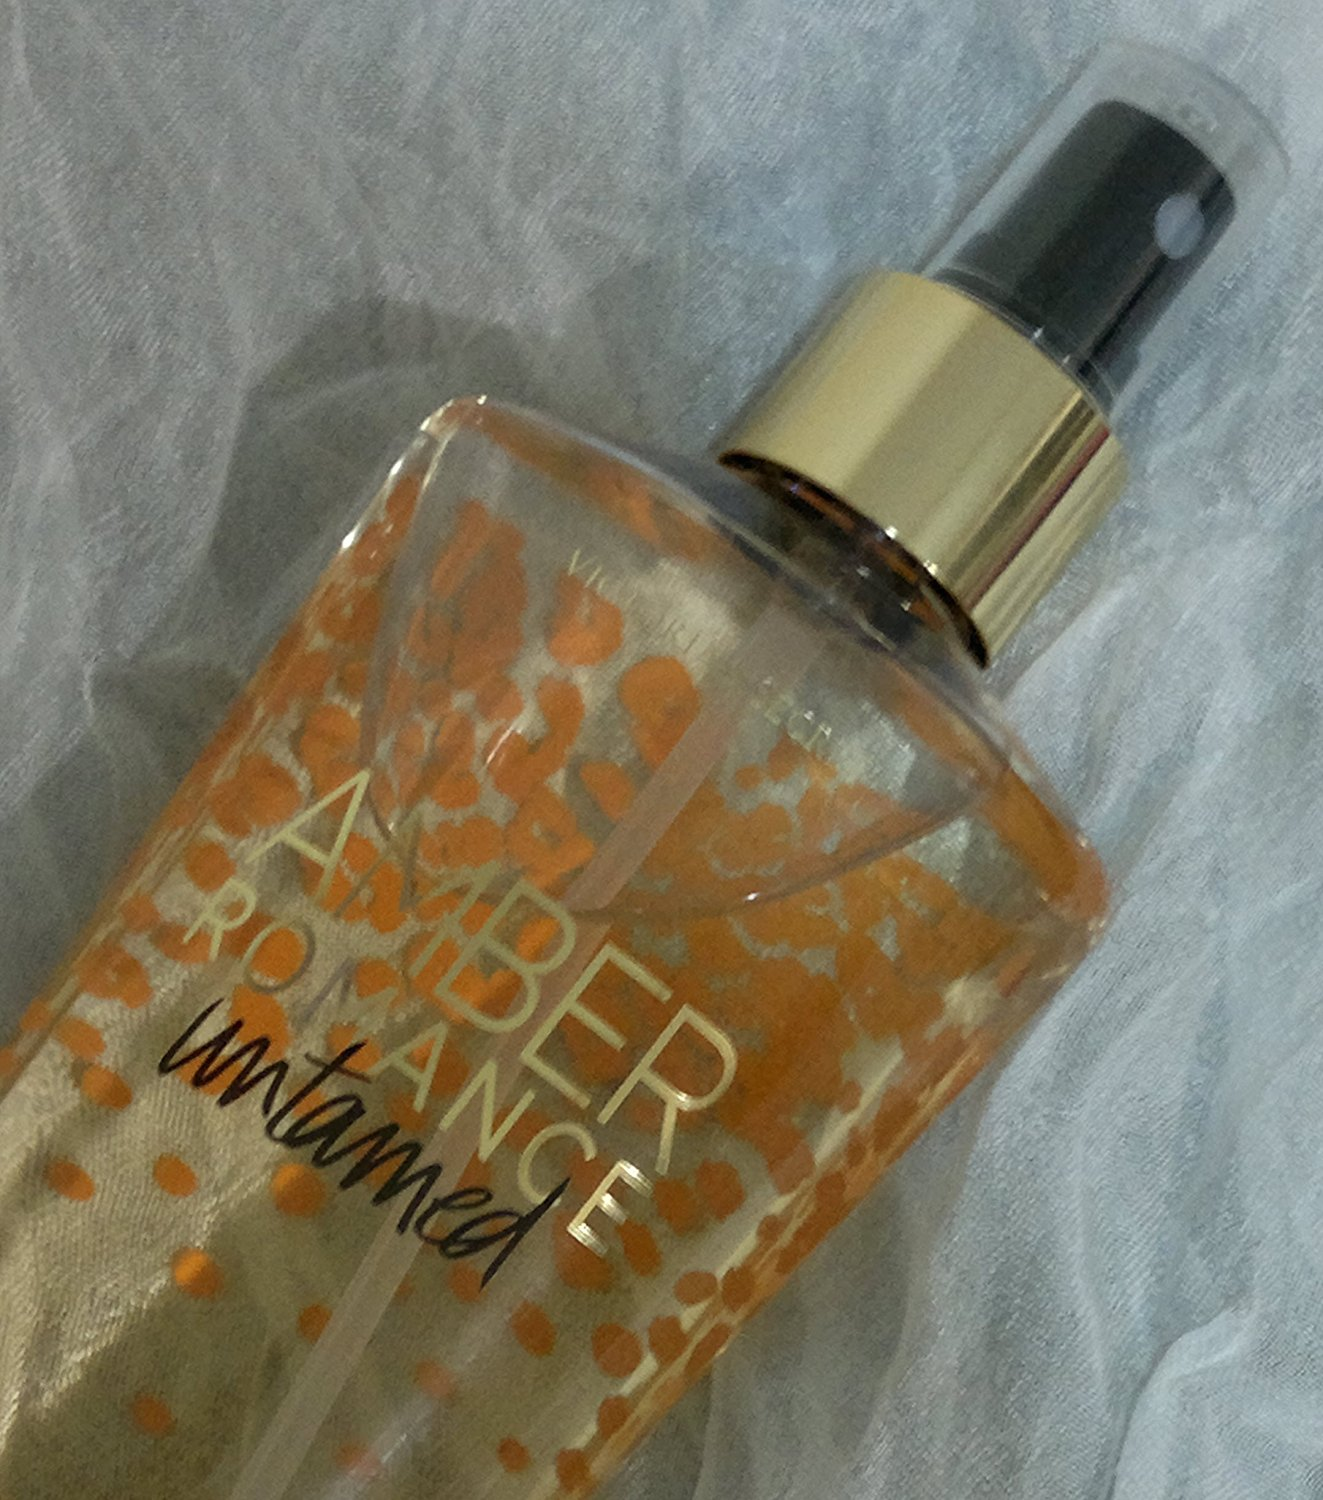 c59ab70569a Get Quotations · Amber Romance Fragrance Mist Untamed Vs Fantasis (New  Look) by Victoria s Secret